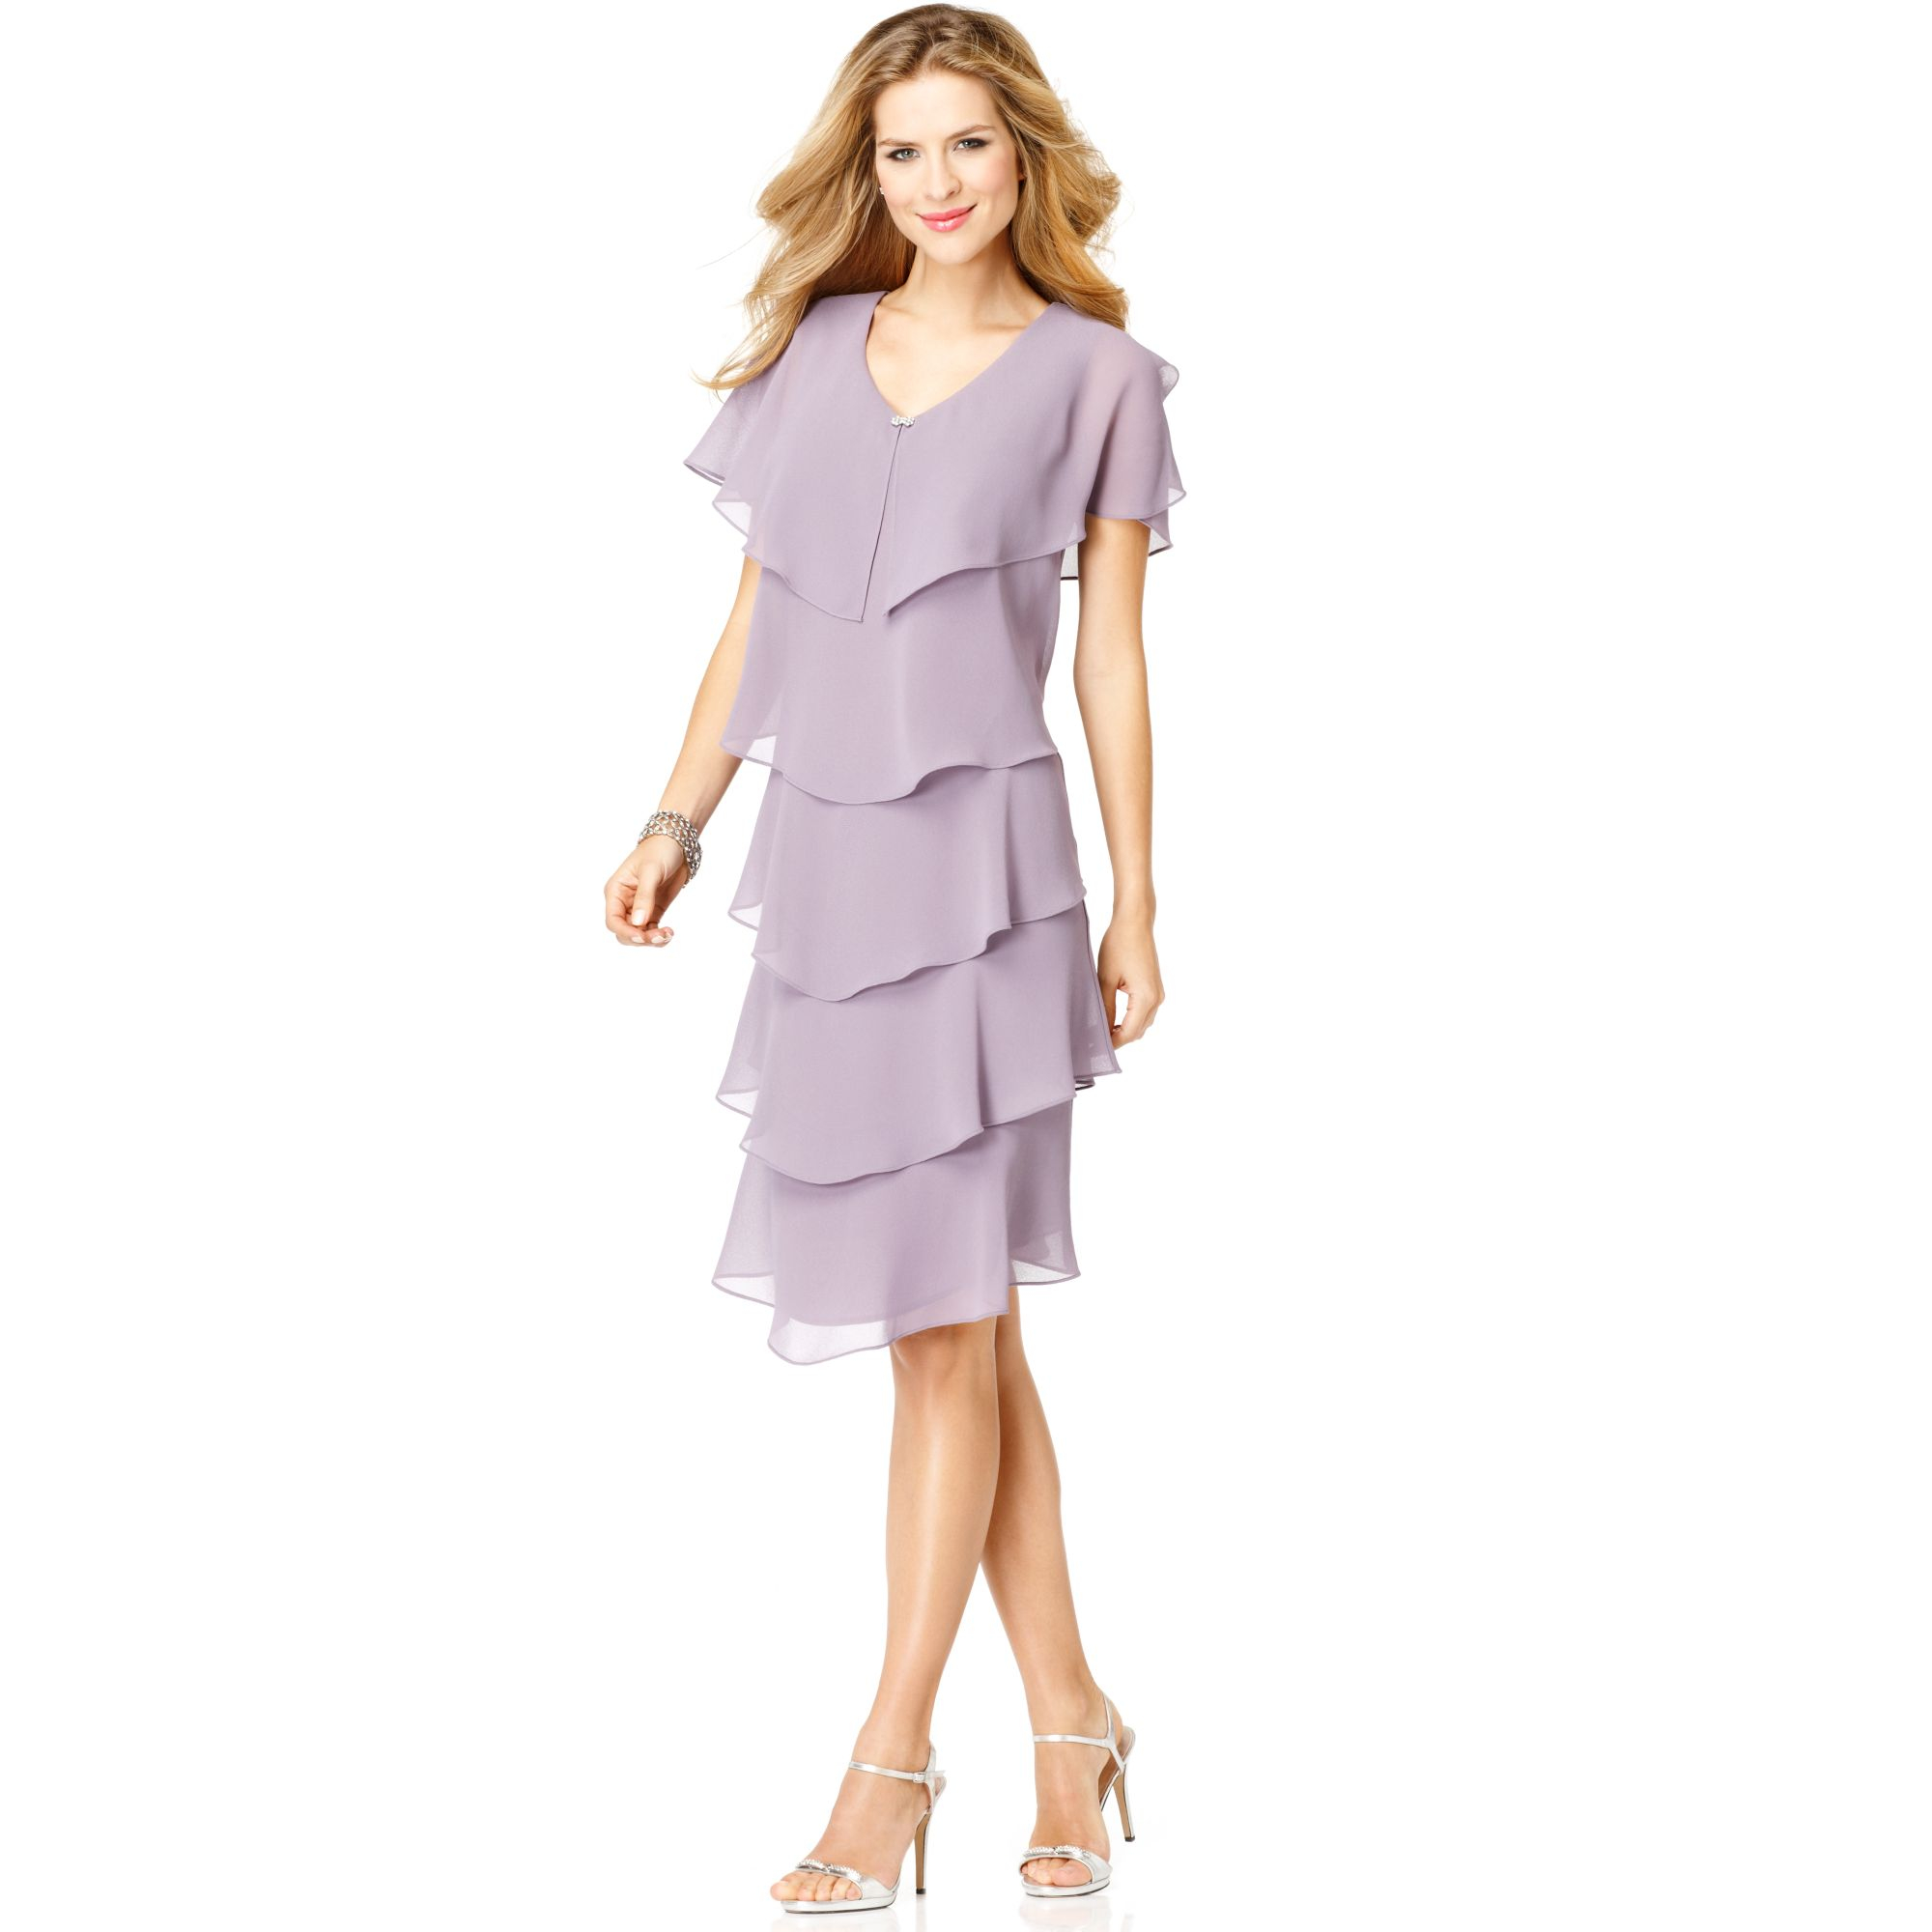 Lyst - Patra Short Sleeve Tiered Dress in Purple